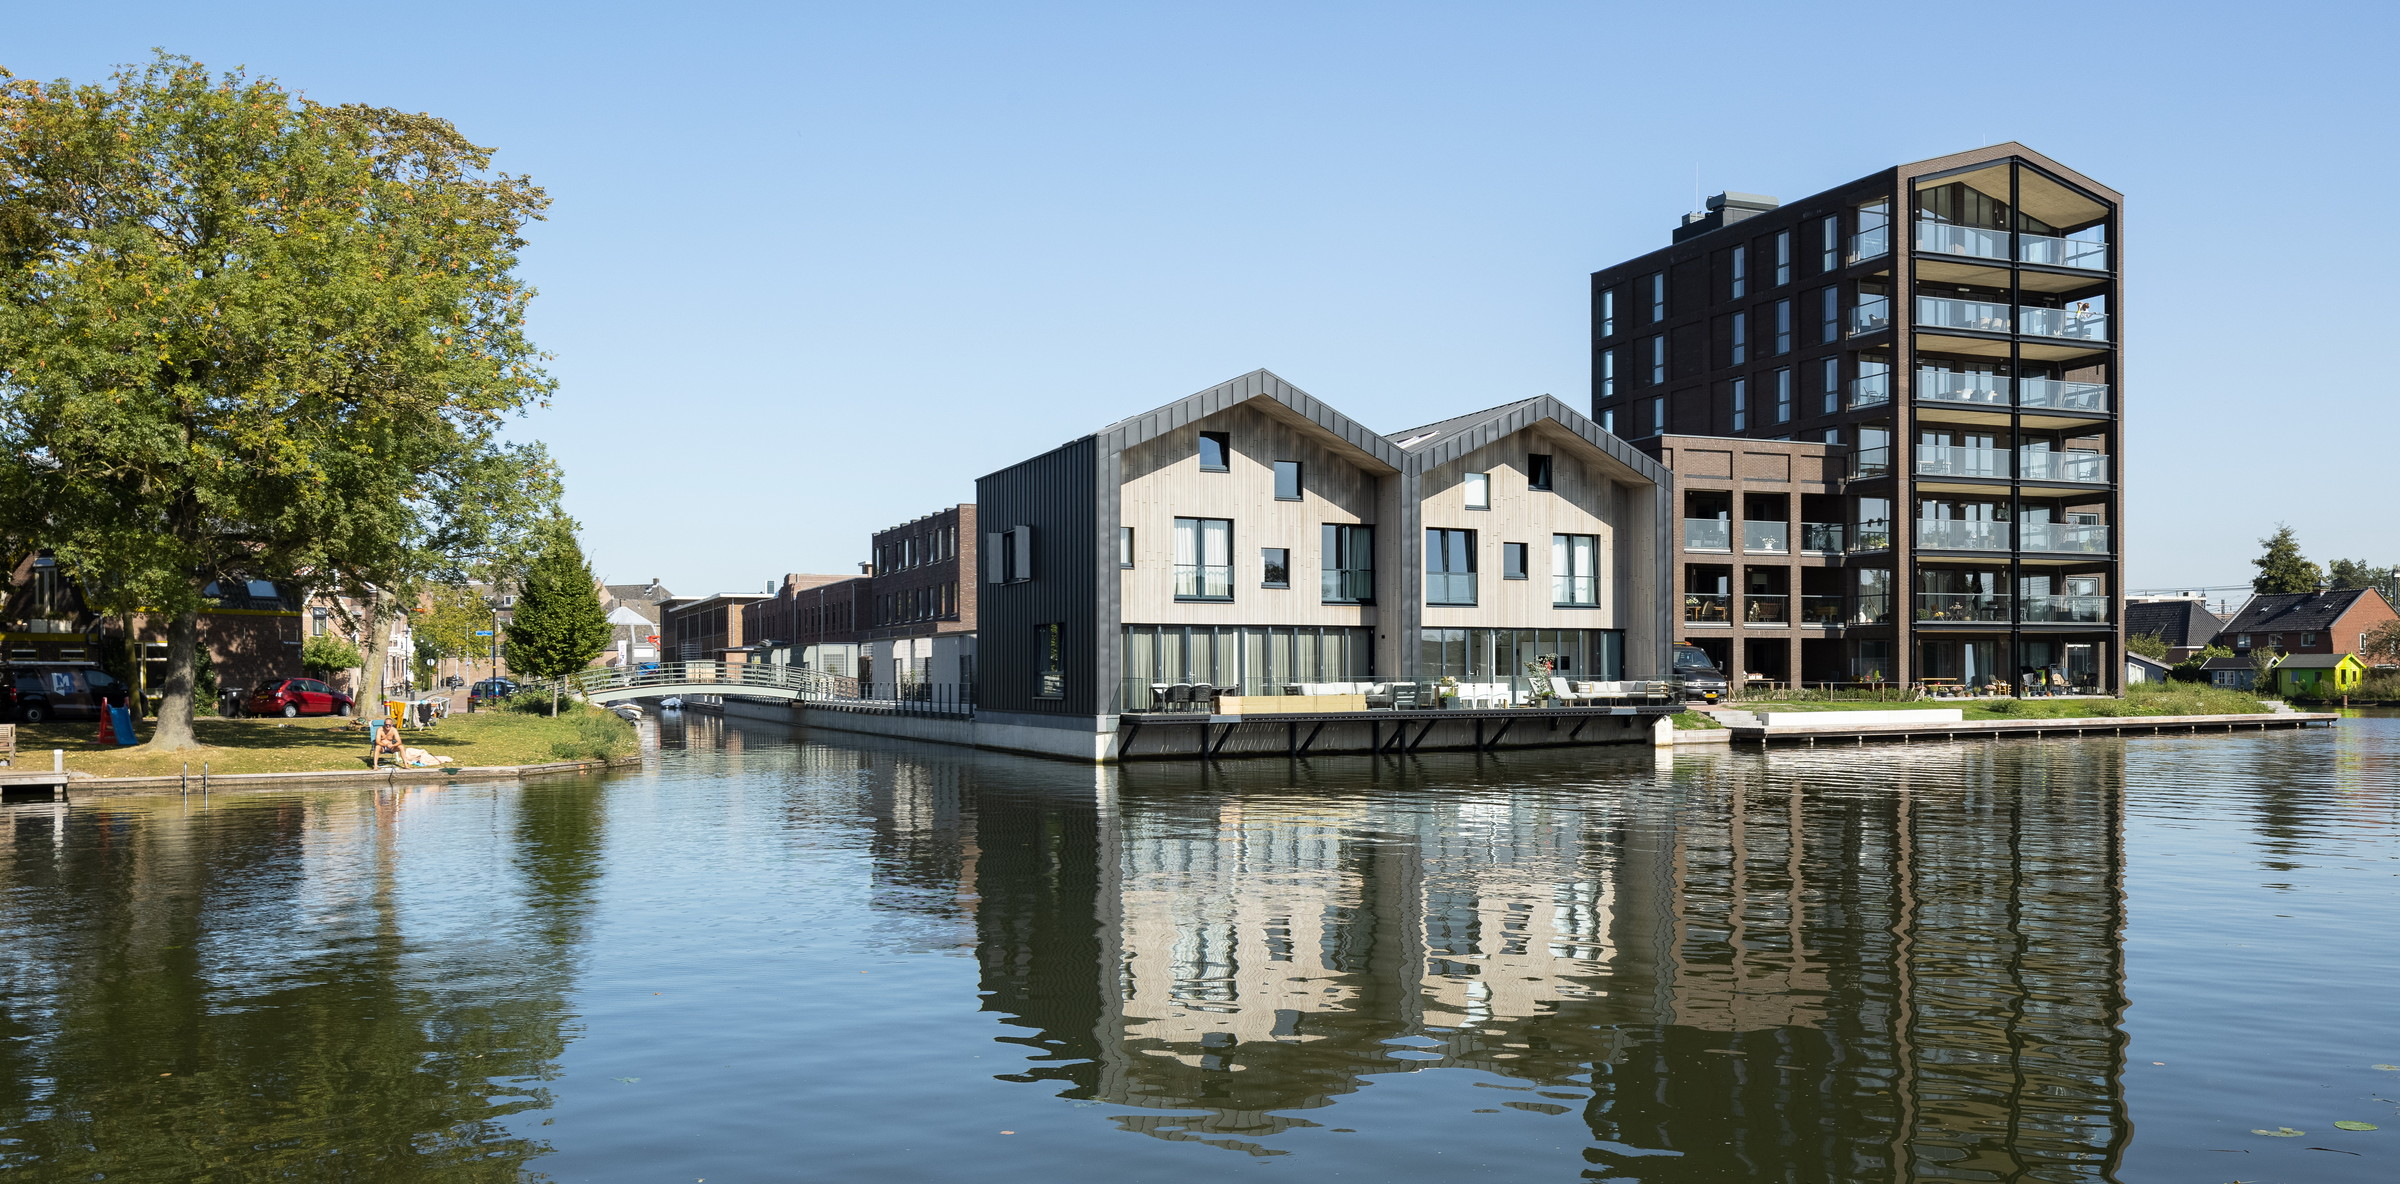 101-Zecc_Architecten-Defensieeiland-Woerden-housing-.JPG